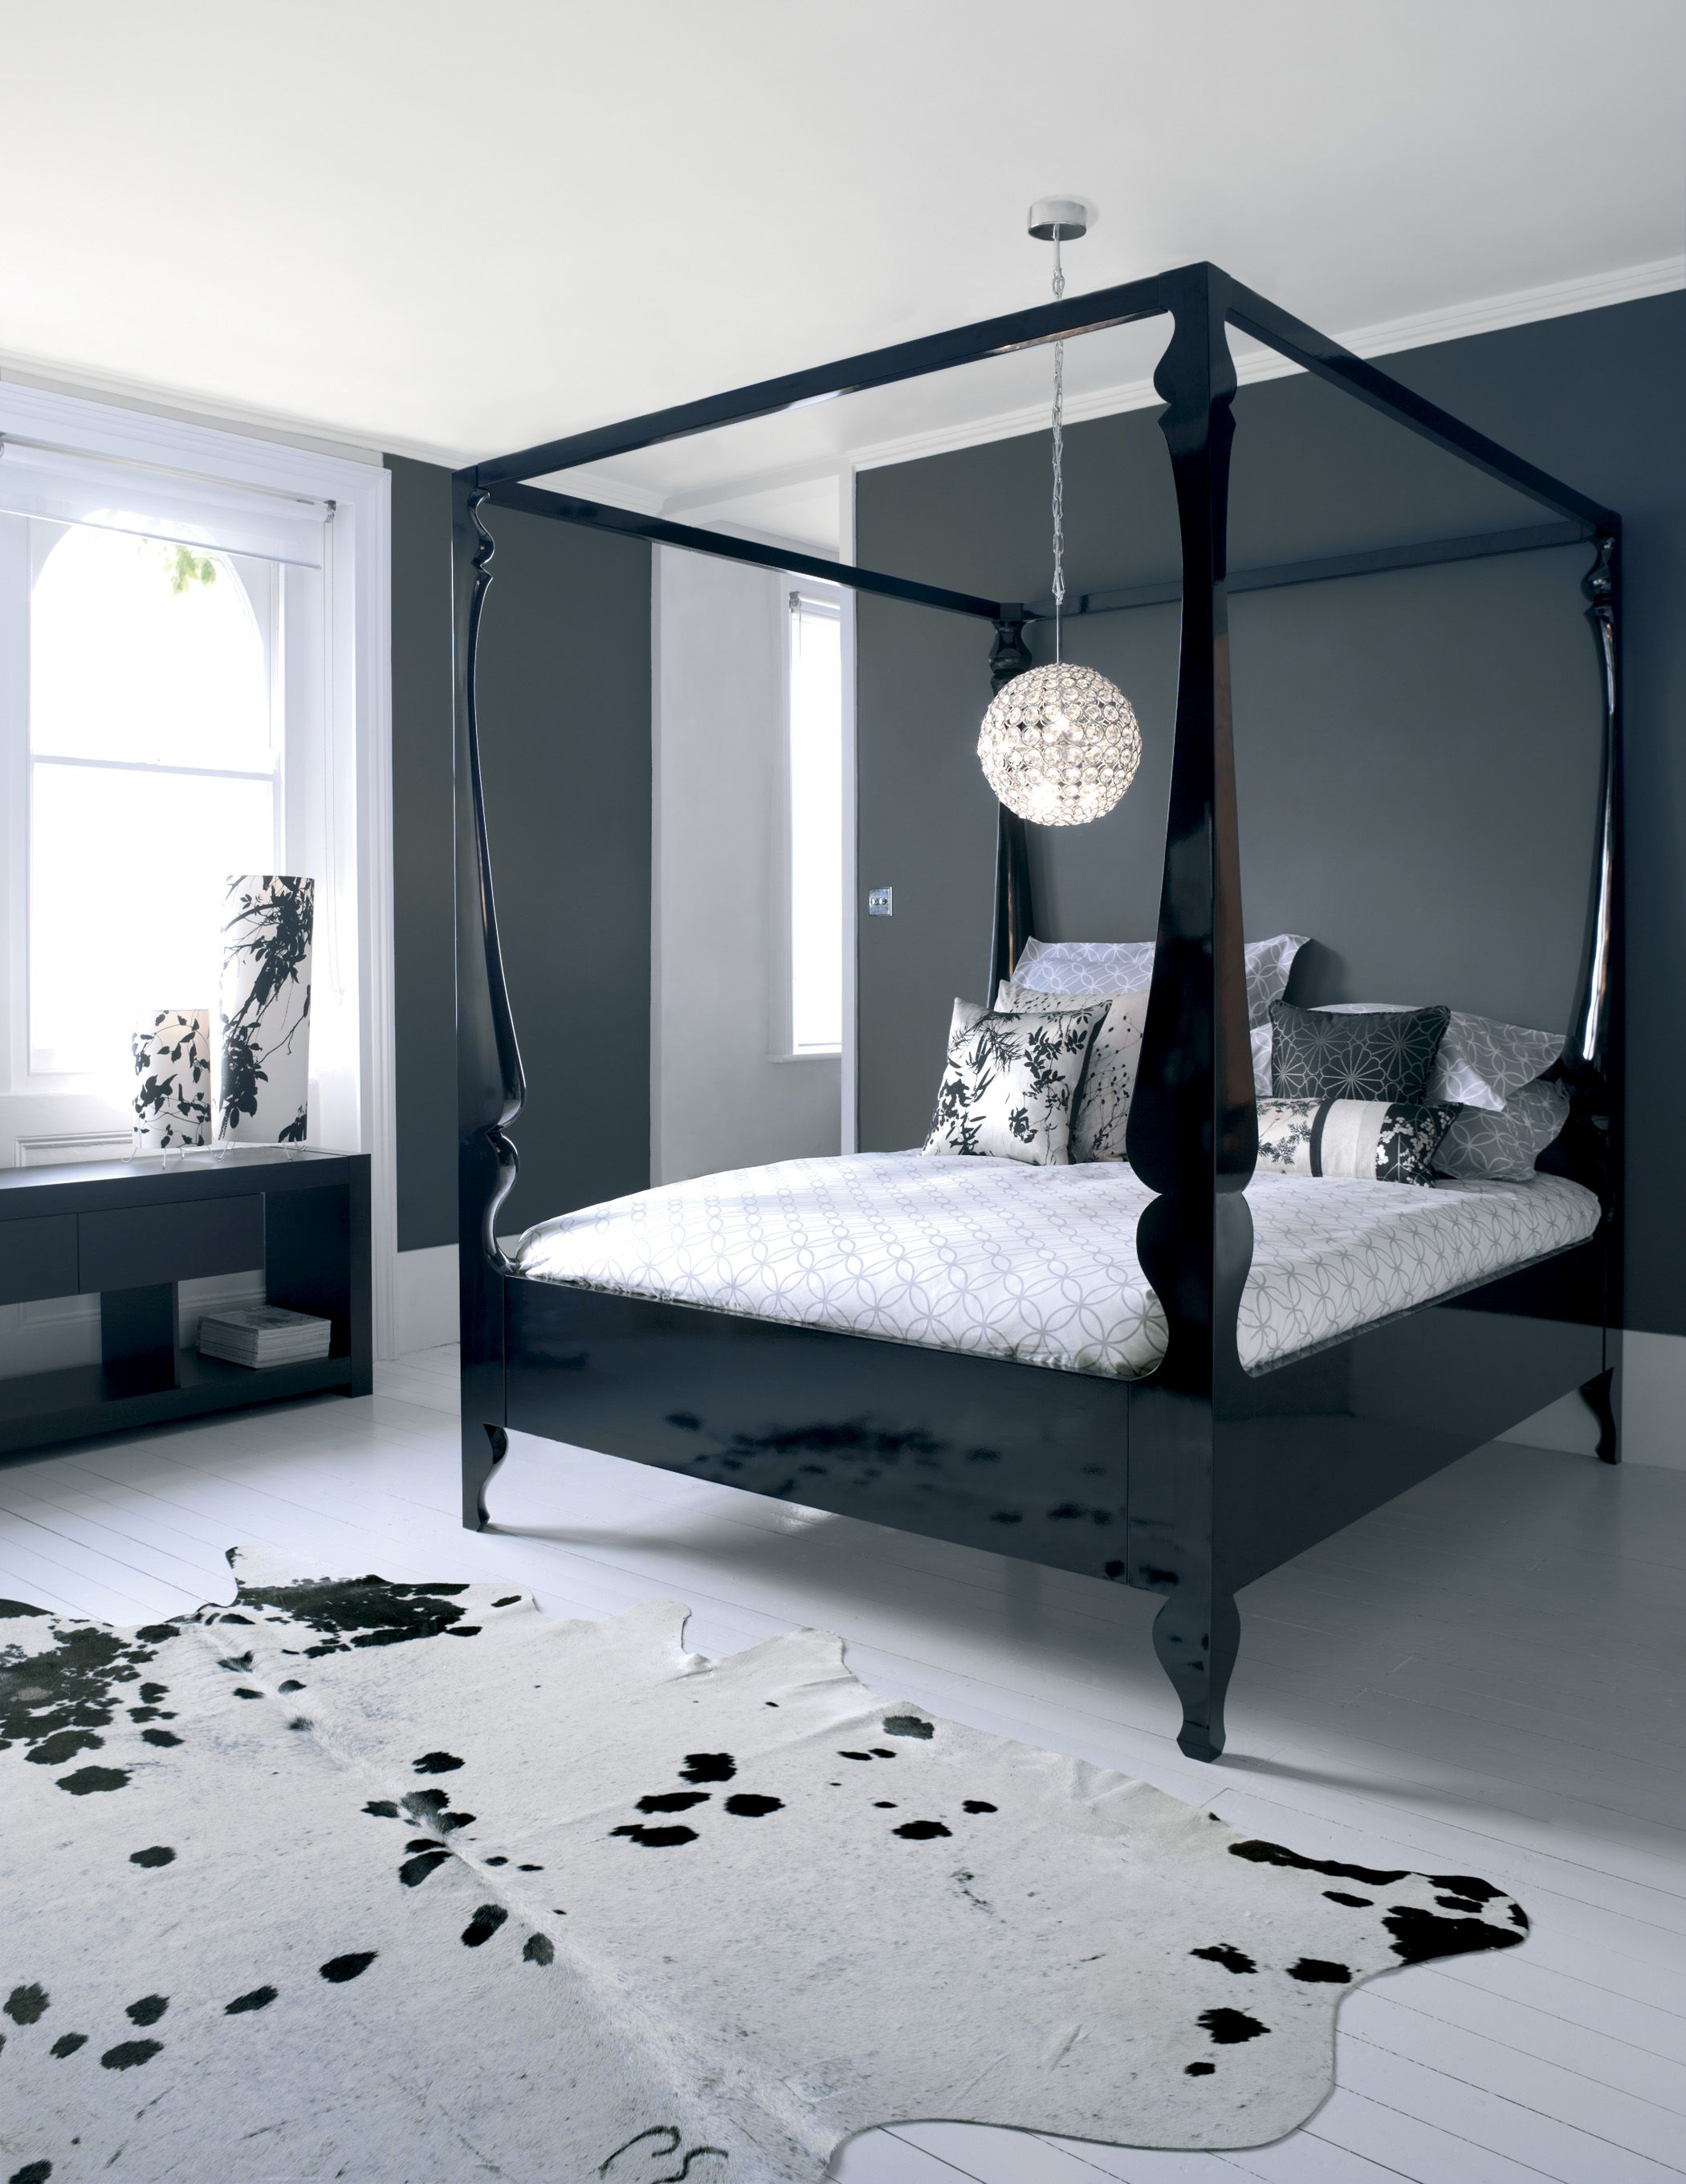 Louis Four Poster Bed By John Reeves